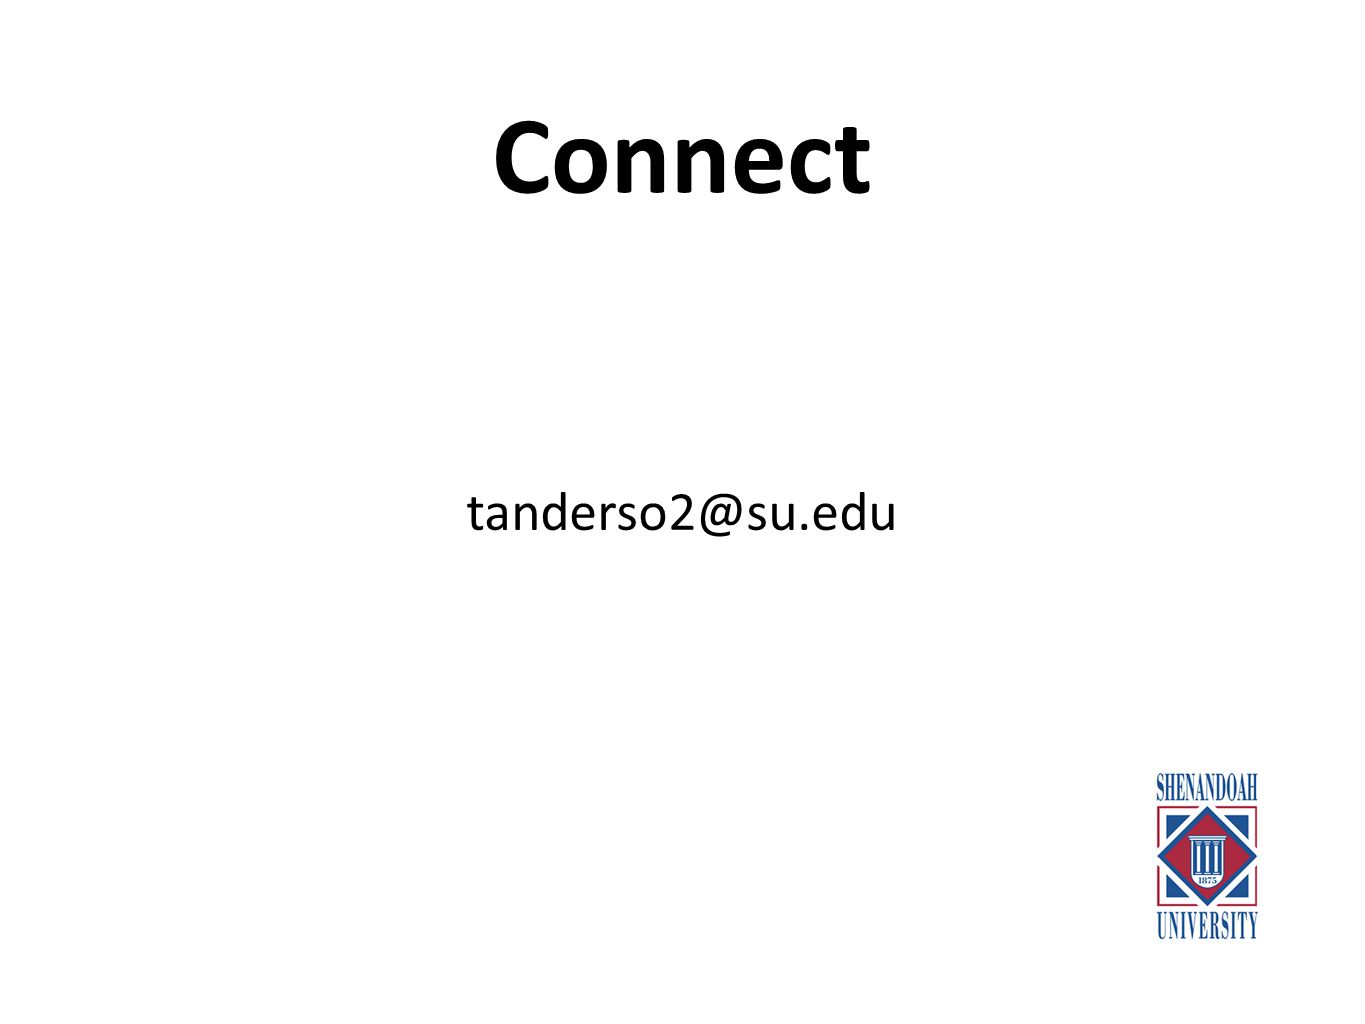 Connect tanderso2@su.edu